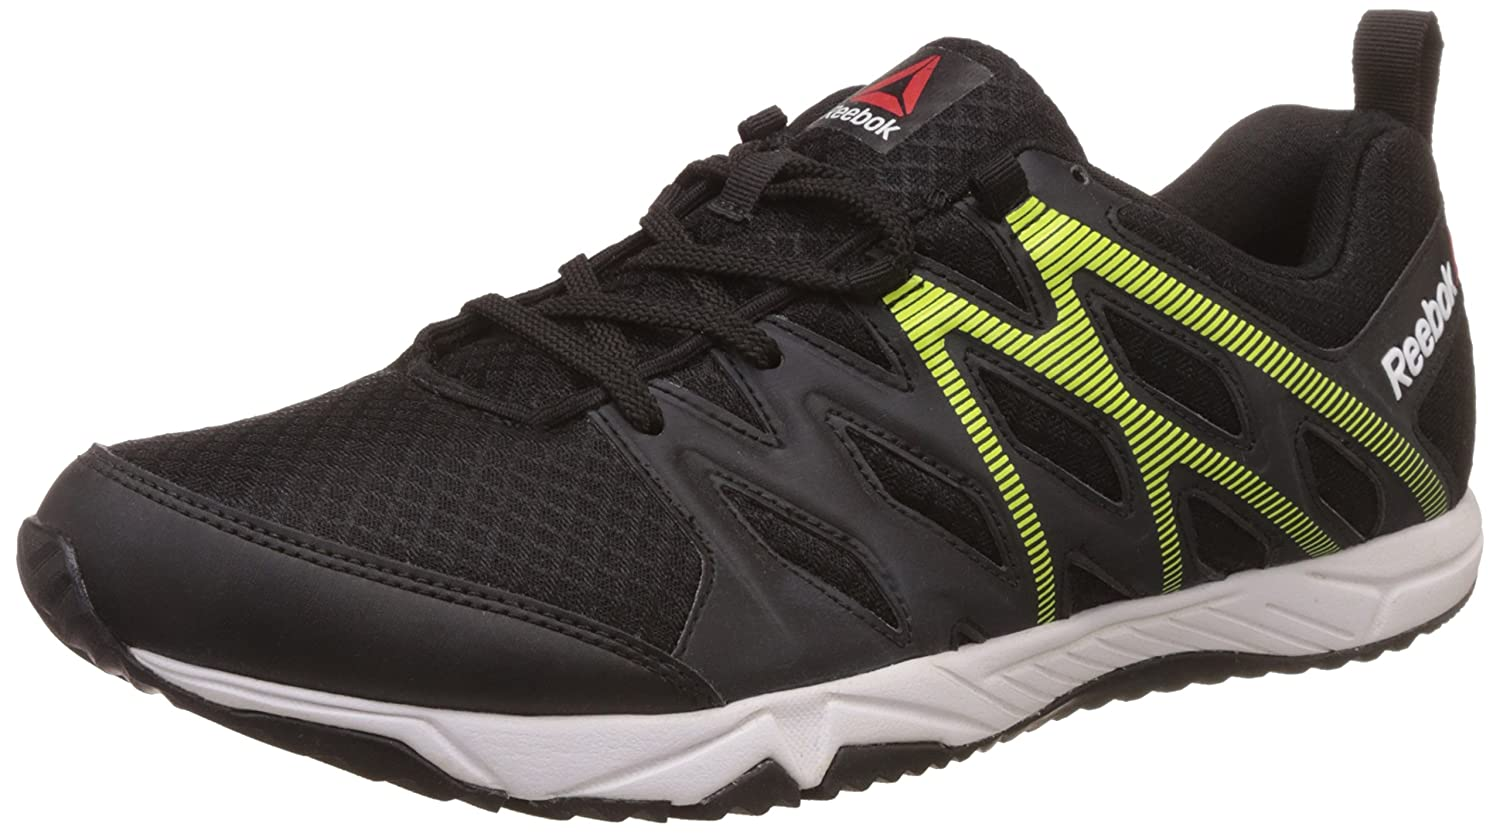 9707a6ccb8792c Reebok Men s Arcade Runner Black Running Shoes - 6 UK India (39 EU)(7 US)  (BS6763)  Buy Online at Low Prices in India - Amazon.in